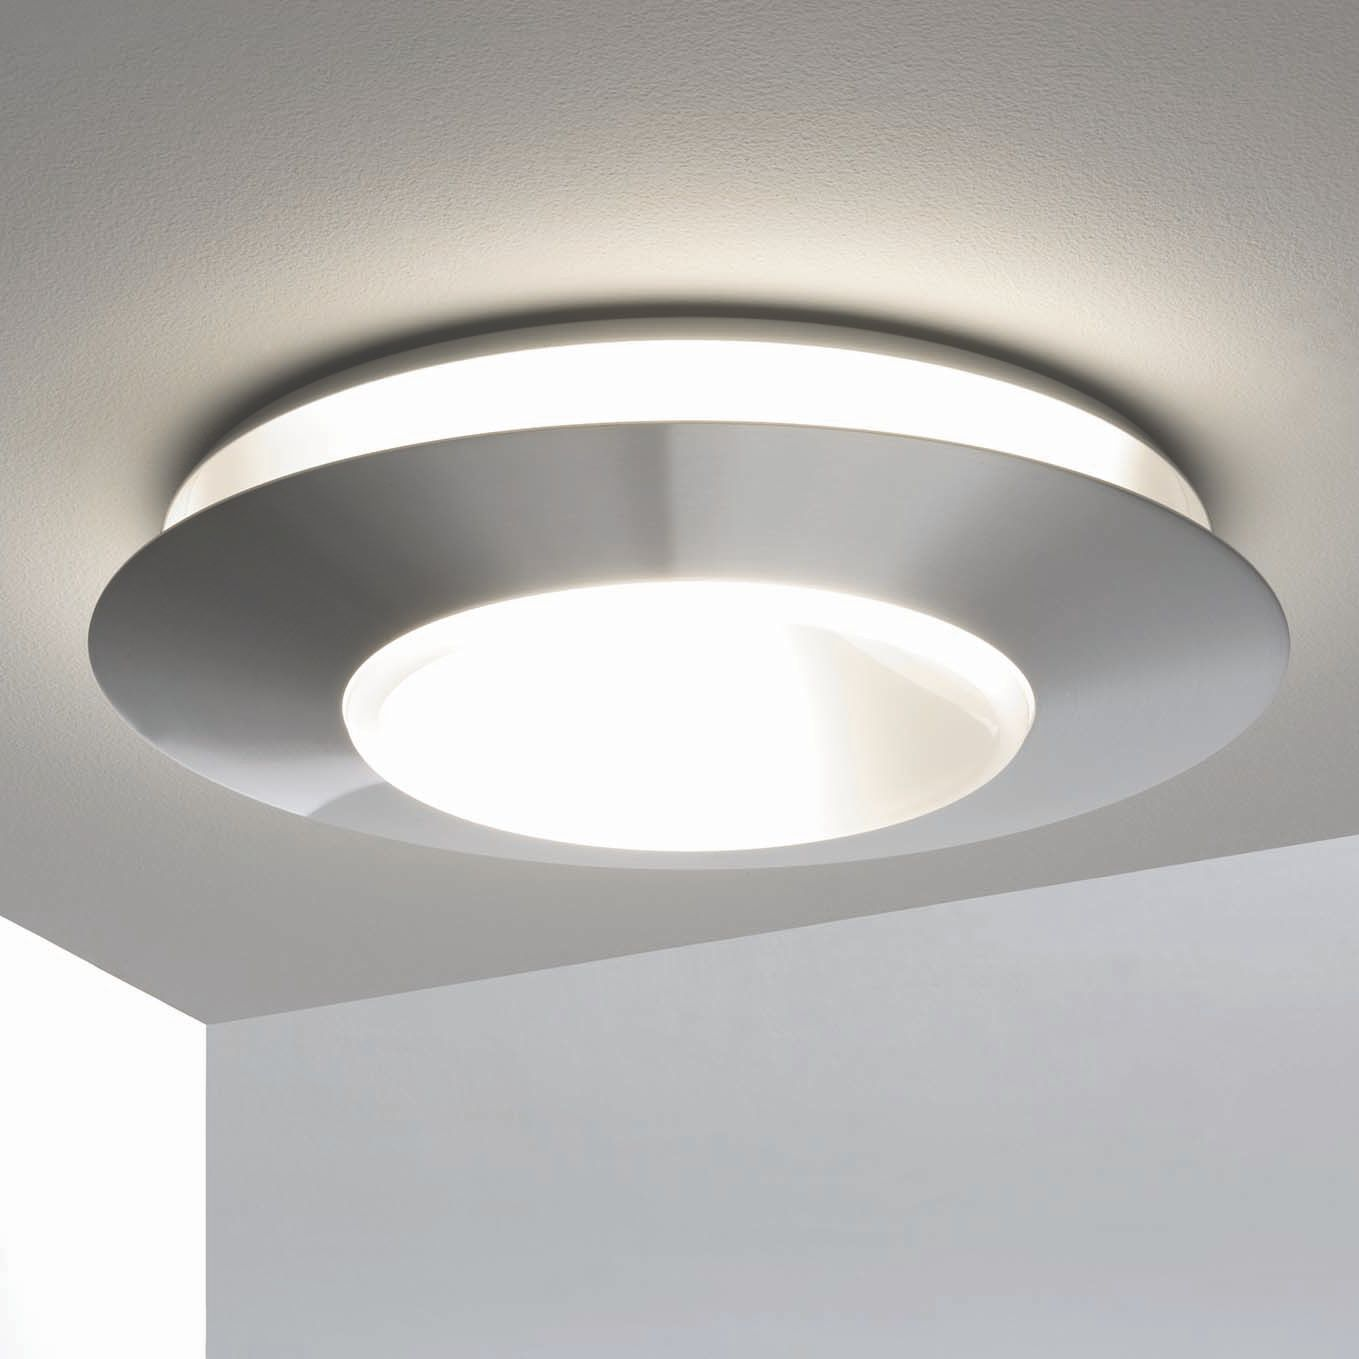 Contemporary Ceiling Light Round Stainless Steel Led Ring 47 By Erik Magnussen